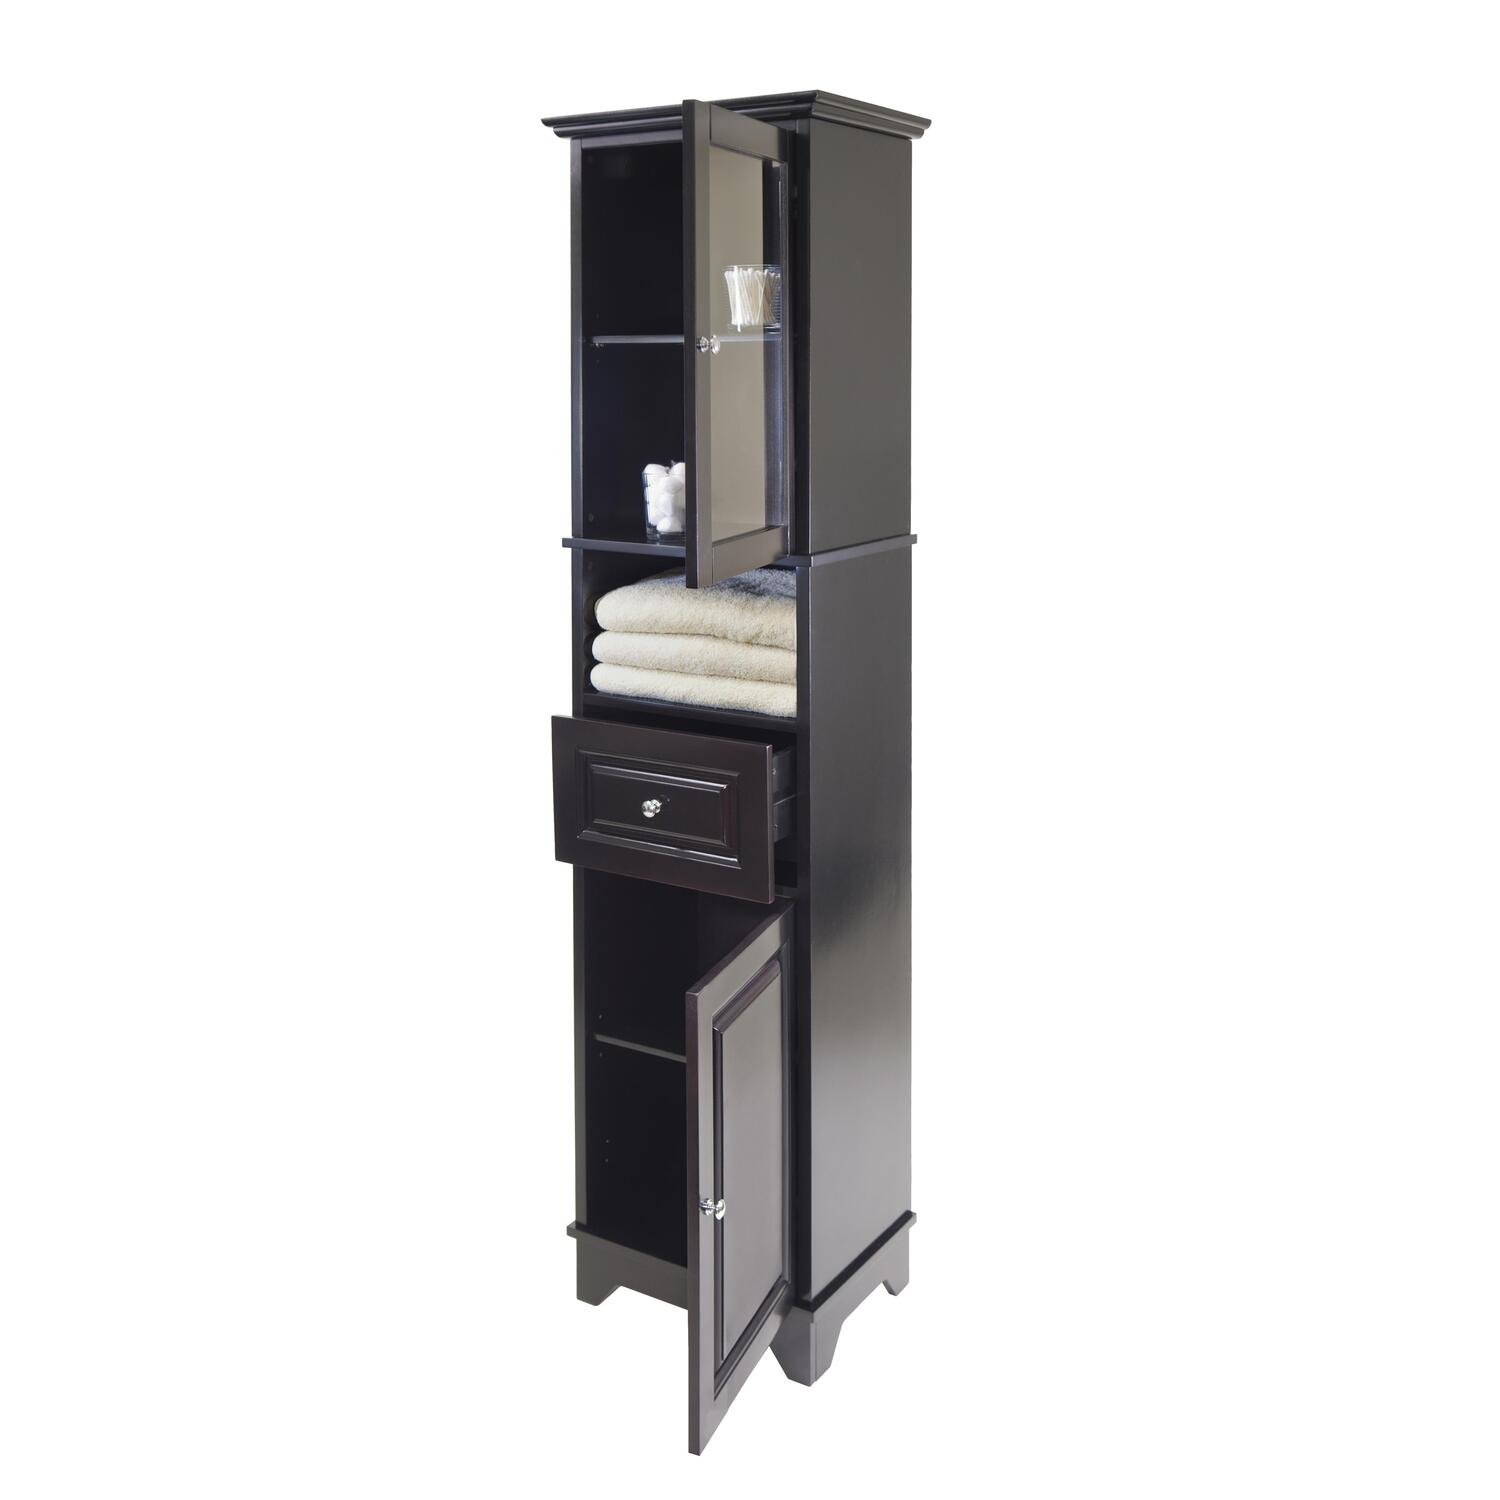 Bathroom Vanity Organization Alps Tall Cabinet With Glass Door And Drawer 153 02